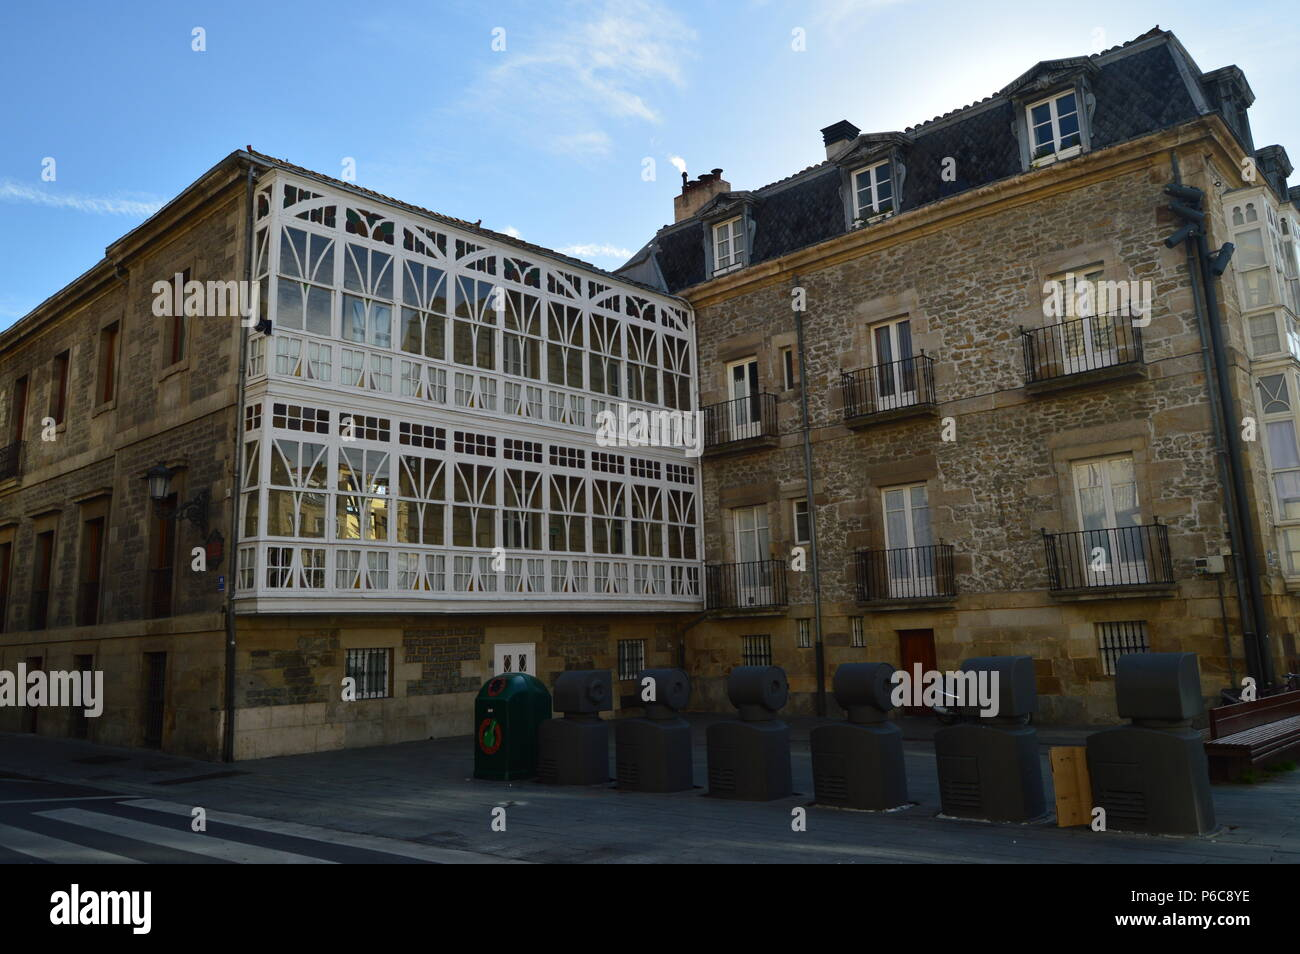 Picturesque Windows Of Typical Buildings Of Vitoria. Architecture, Art, History, Travel. December 29, 2015. Vitoria, Alava, Basque Country. Spain. - Stock Image